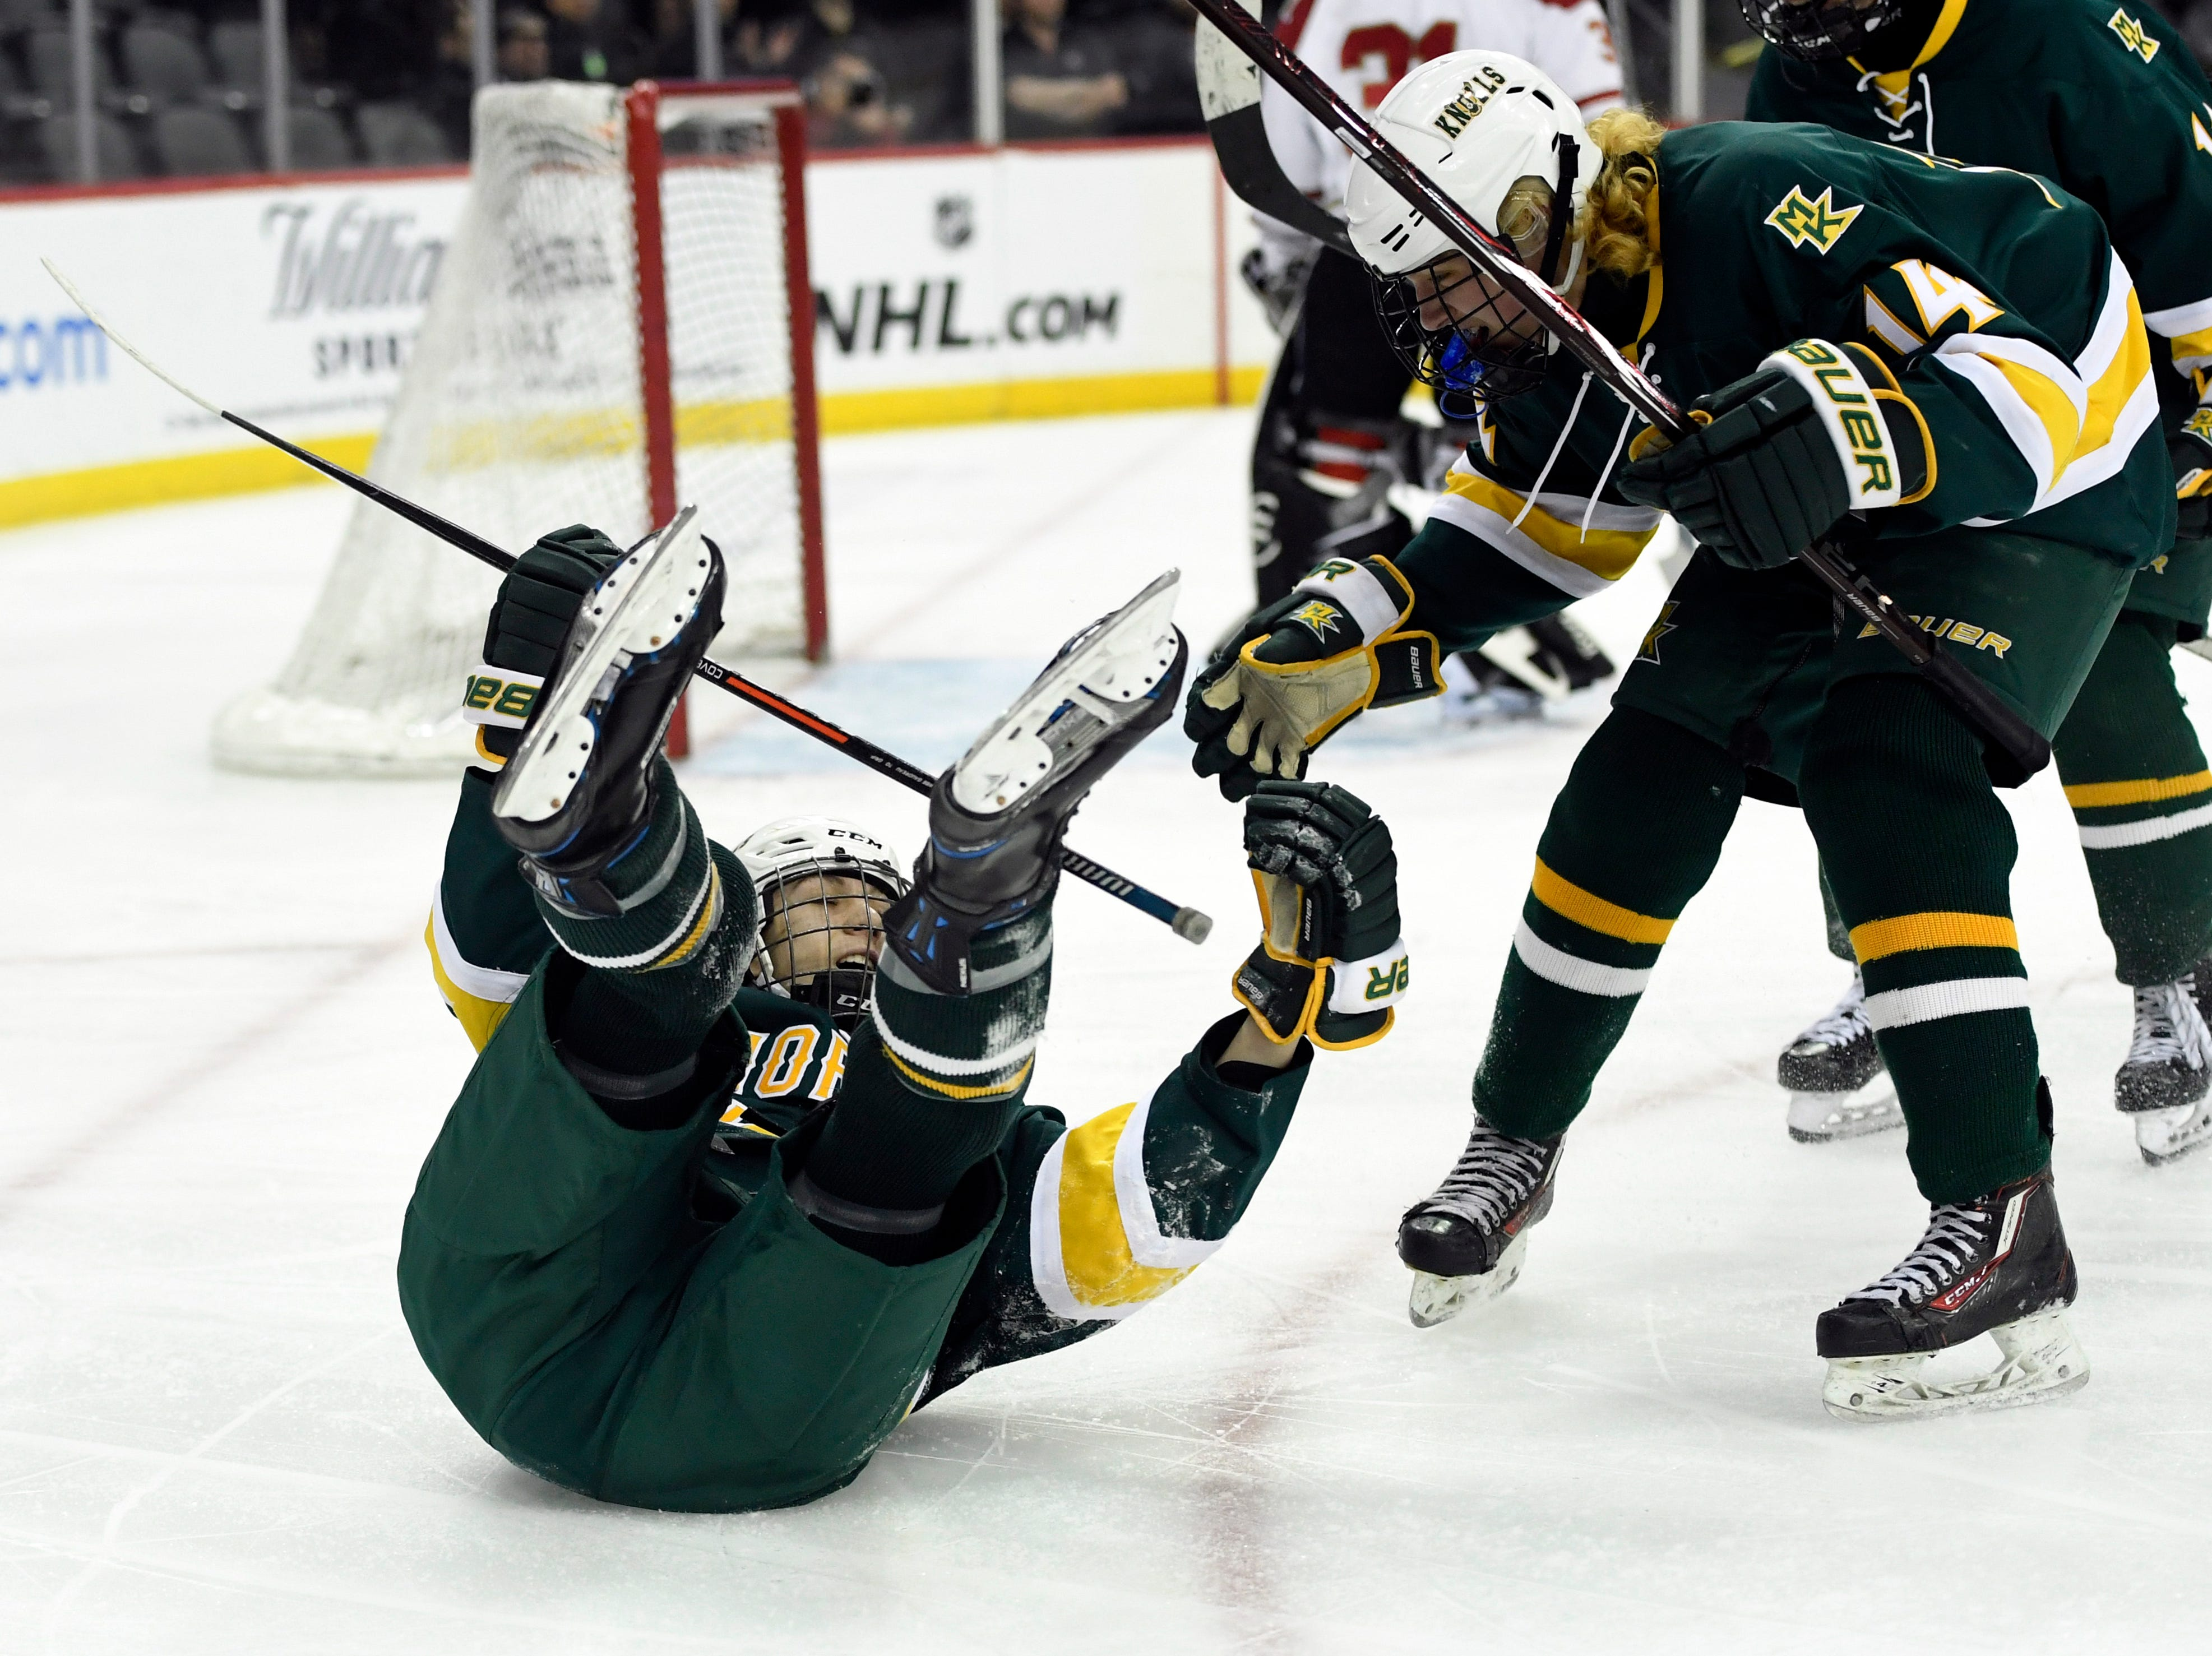 Morris Knolls/Hills' Gehrig Eckoff, left, and Sean Murray celebrate Walsh's goal in the second period in the Public A ice hockey final at the Prudential Center on Monday, March 4, 2019, in Newark.